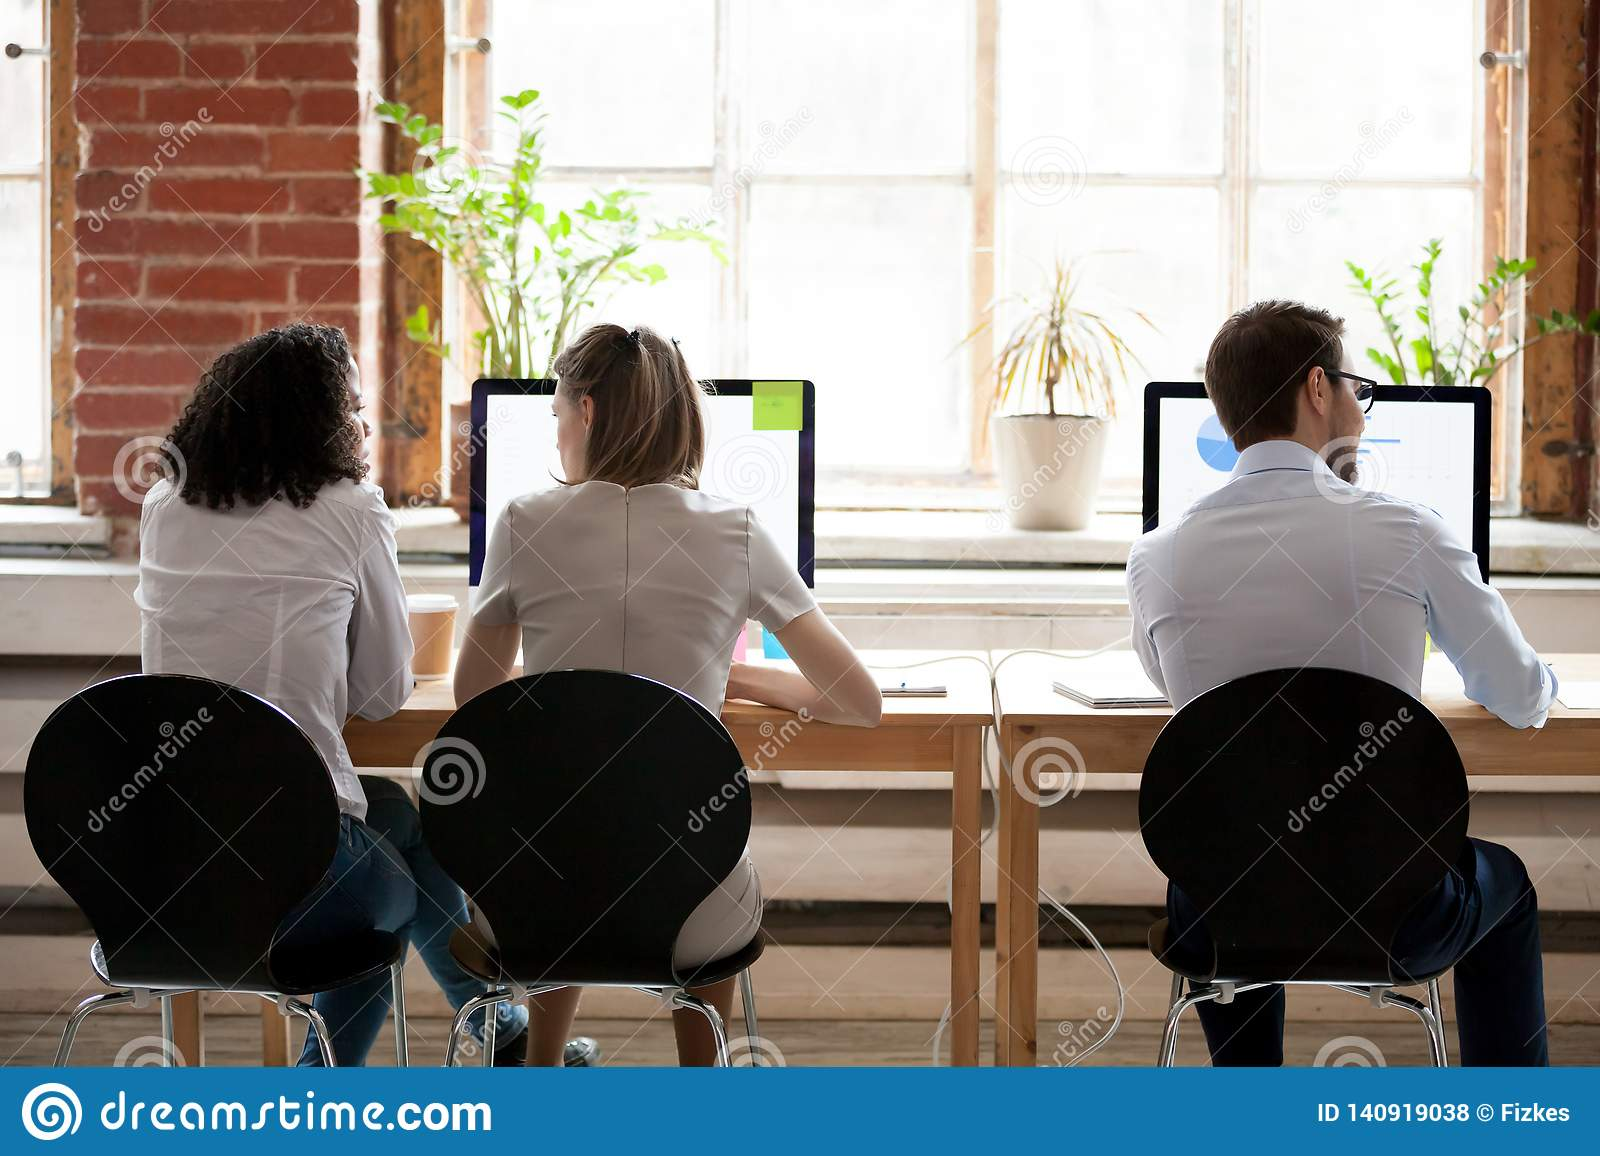 Women and man sitting in shared office rear back view